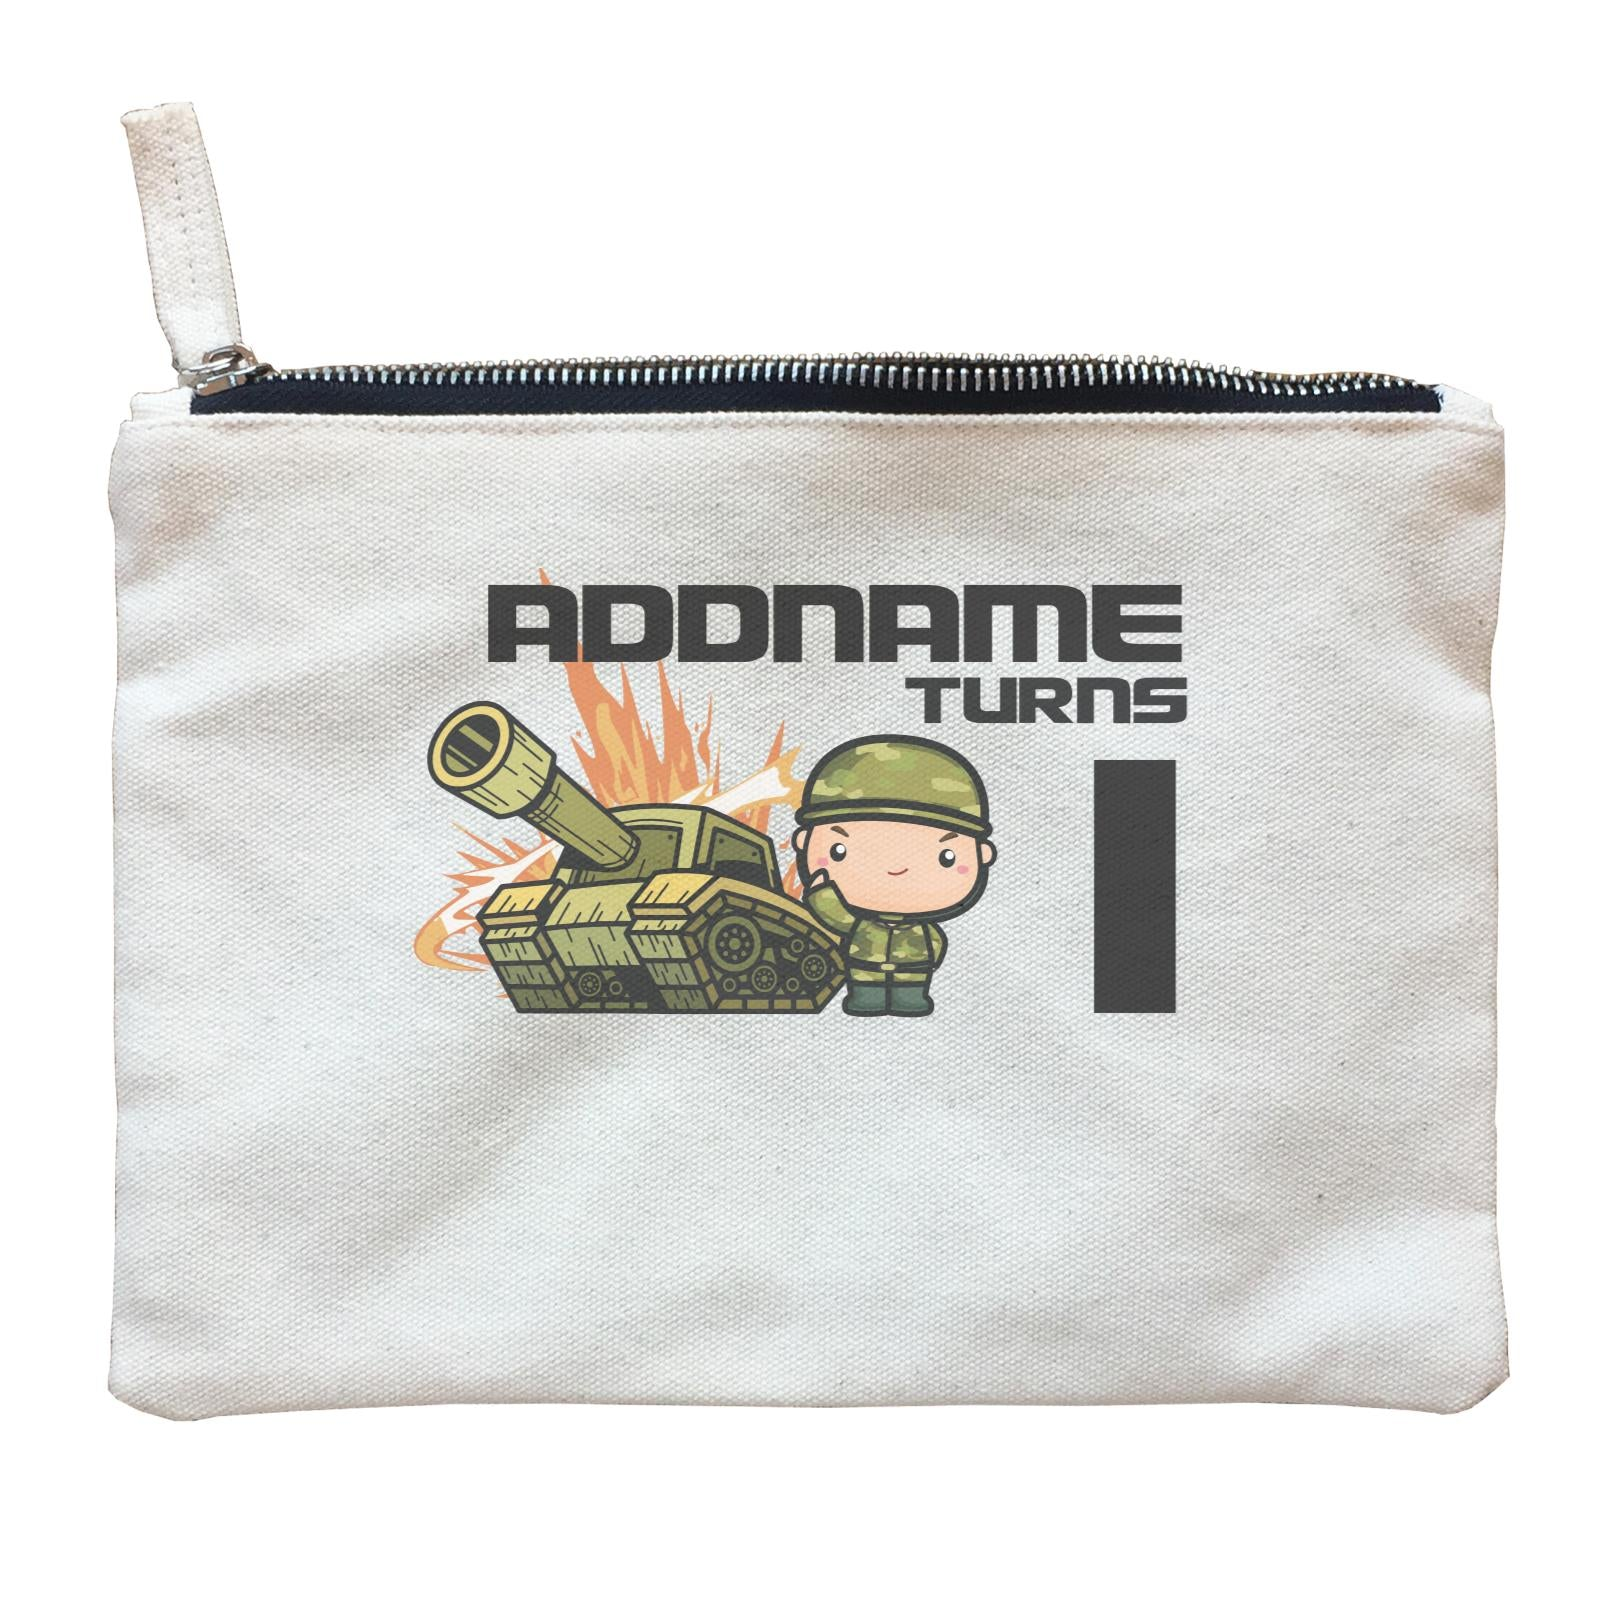 Birthday Battle Theme Tank And Army Soldier Boy Addname Turns 1 Zipper Pouch